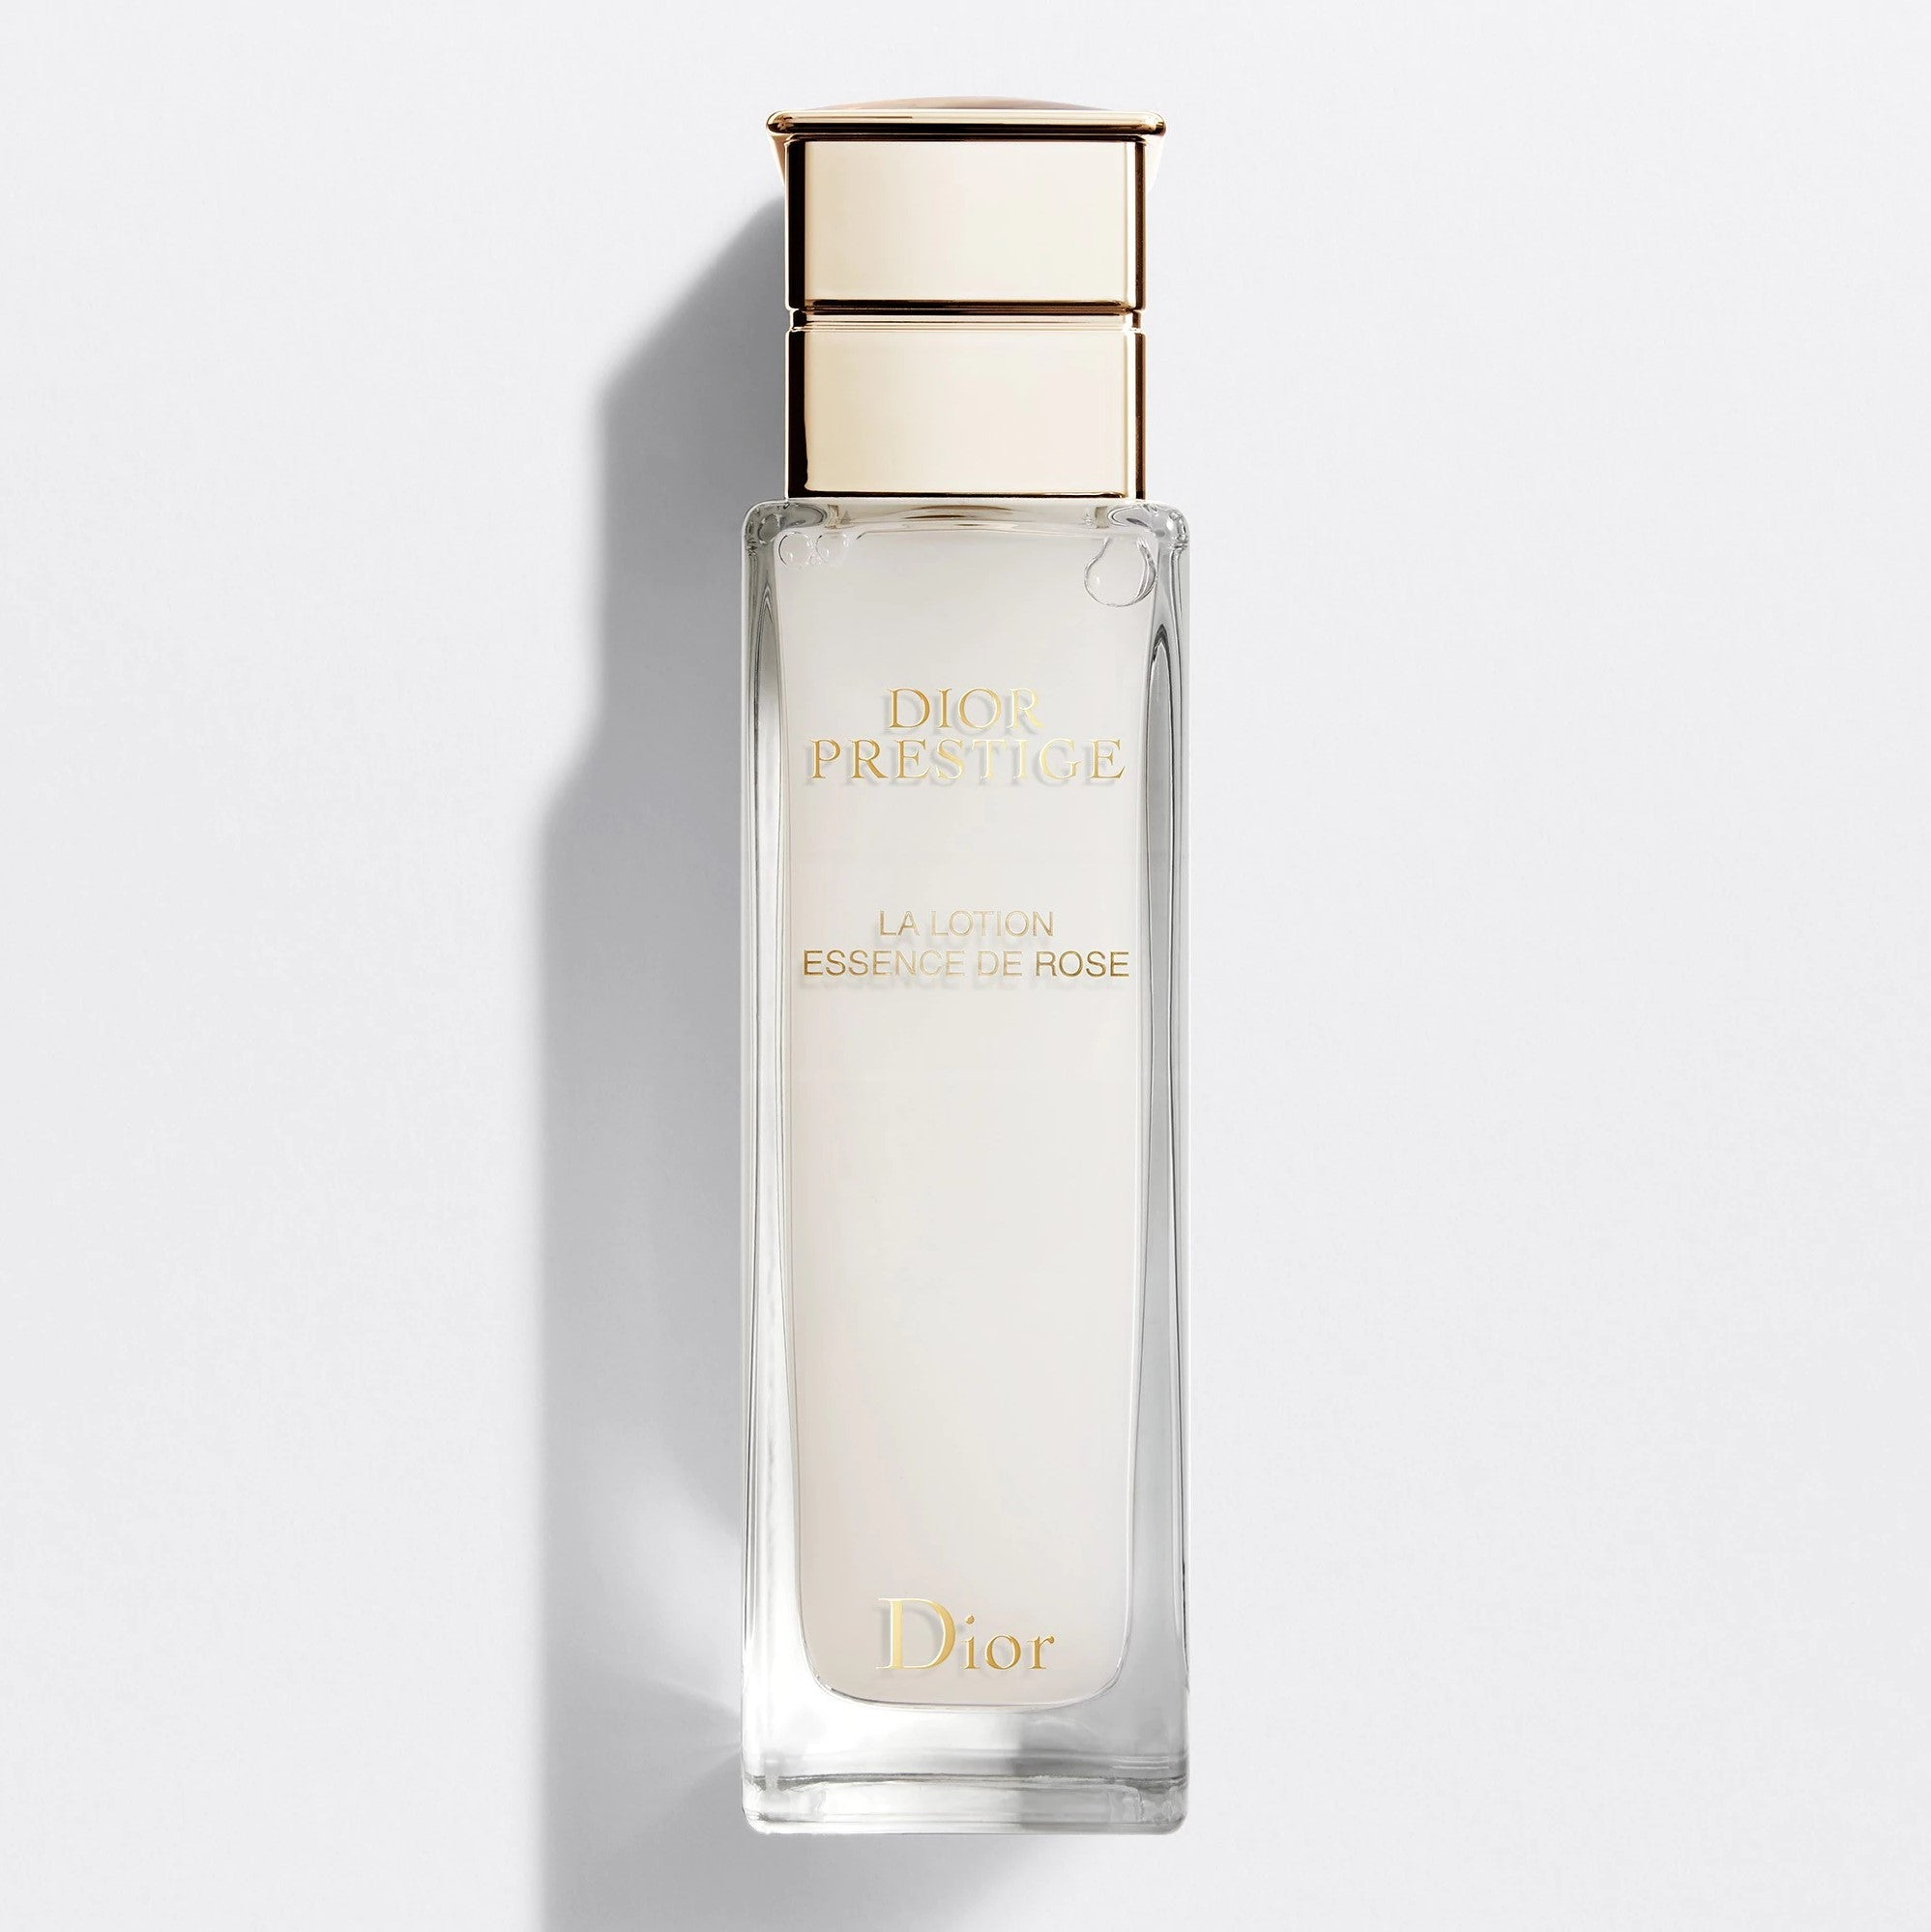 DIOR PRESTIGE | La lotion essence de rose